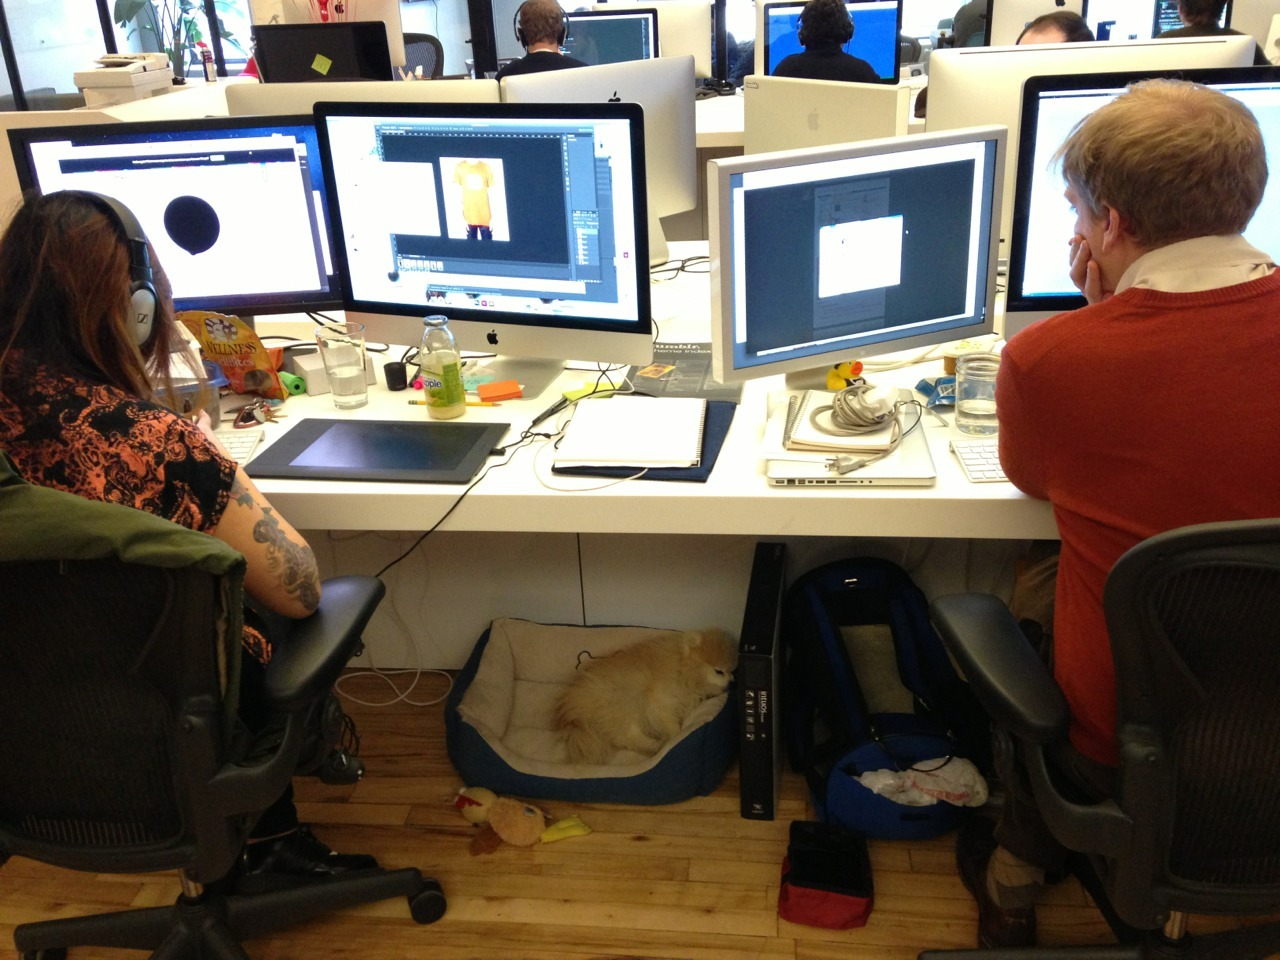 Sleeping on the job at Tumblr HQ.